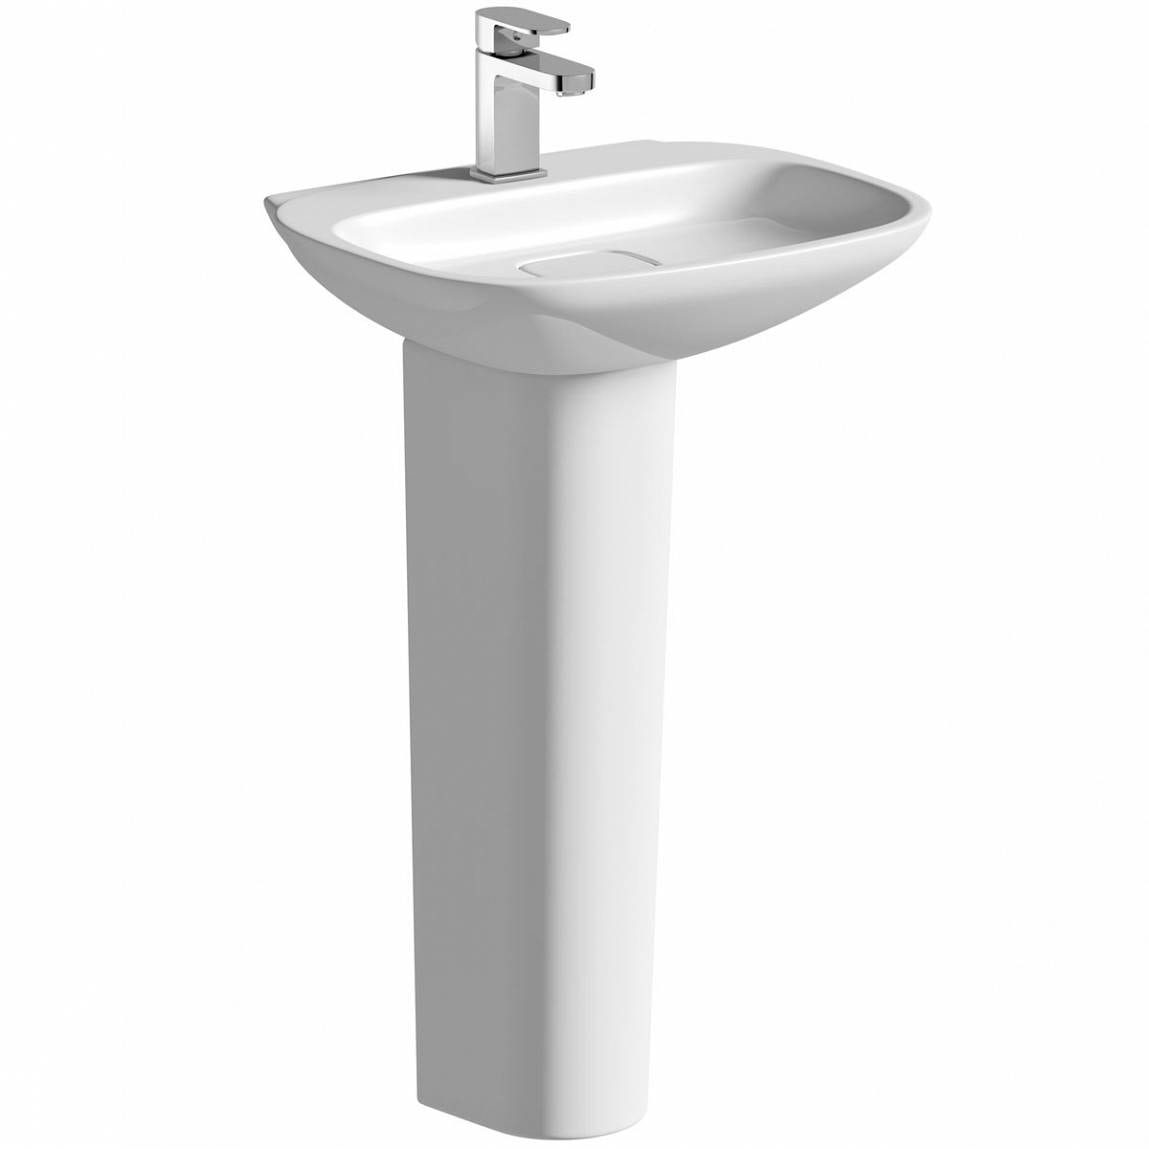 Mode Heath 1 tap hole full pedestal basin 500mm